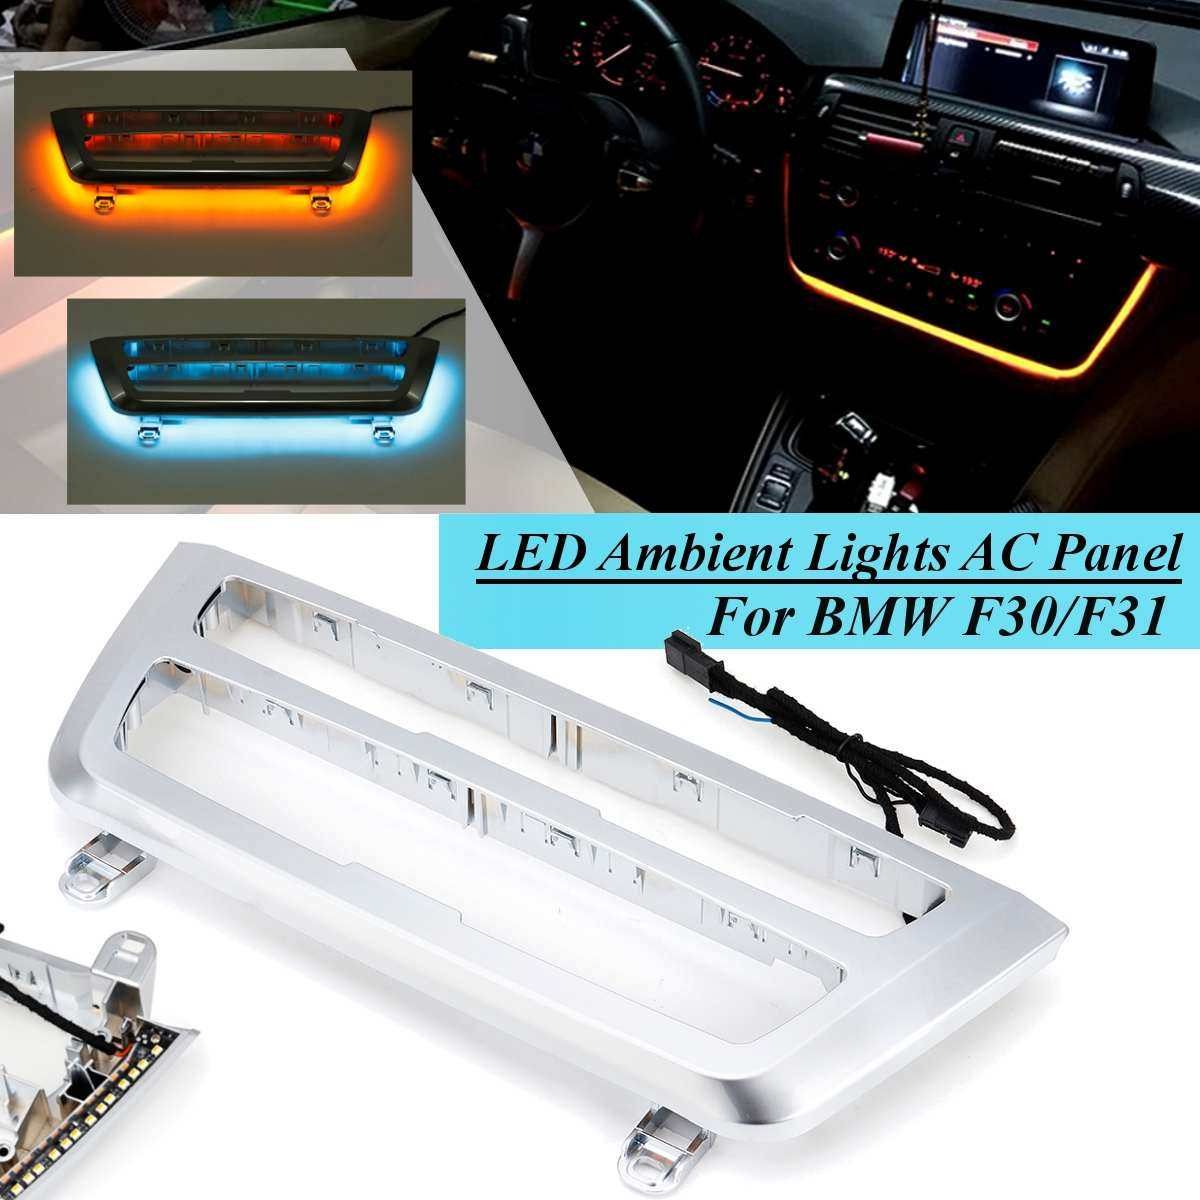 for BMW 3 & 4 series F30 LCI radio trim led dashboard center console AC  panel light with blue and orange light color